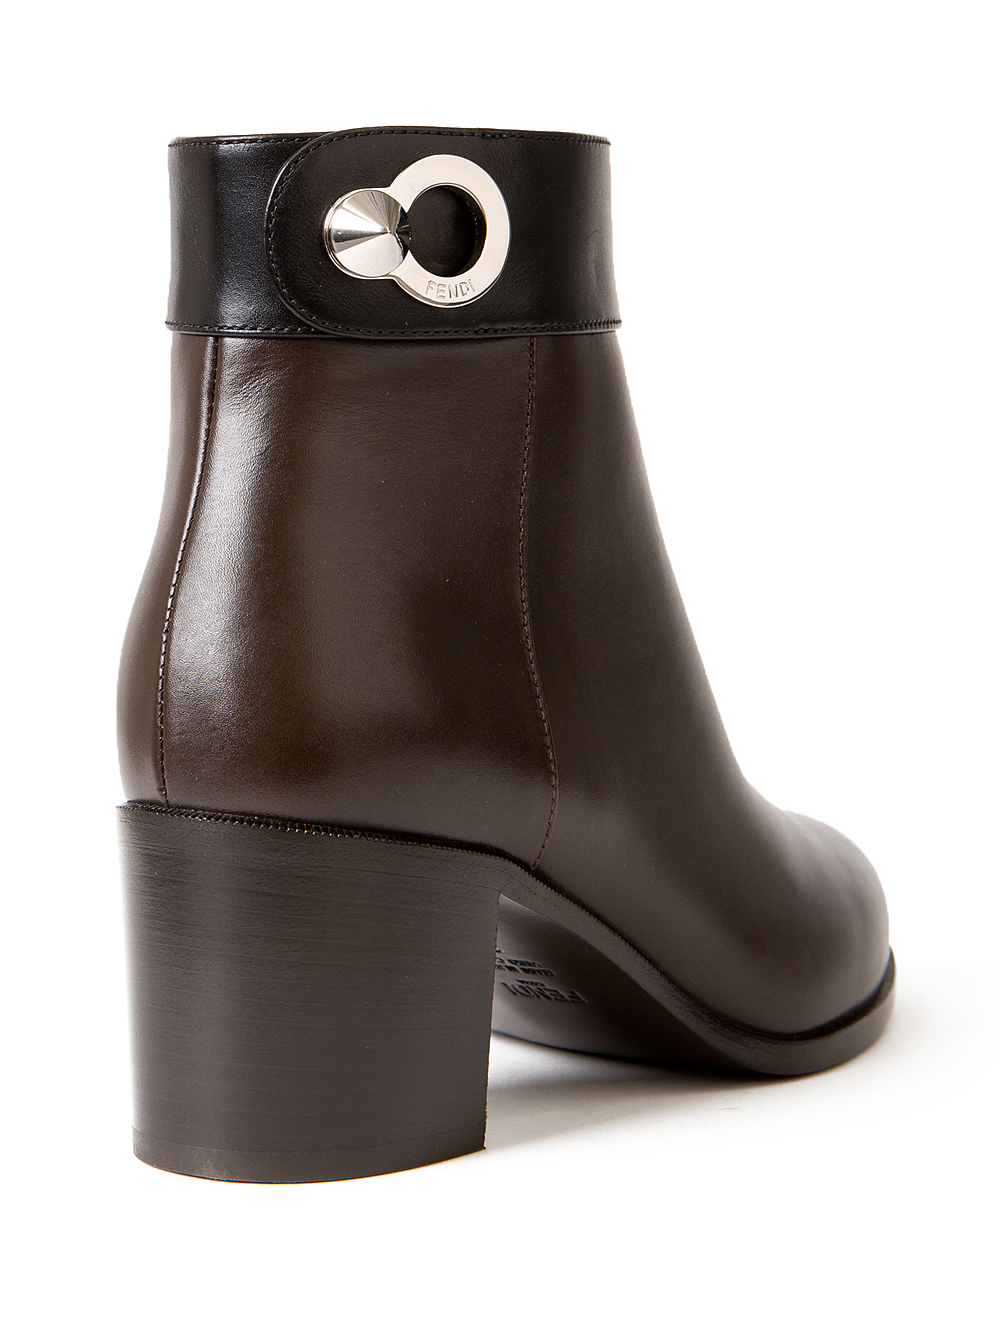 Fendi Leather Bicolor Ankle Boots in Brown